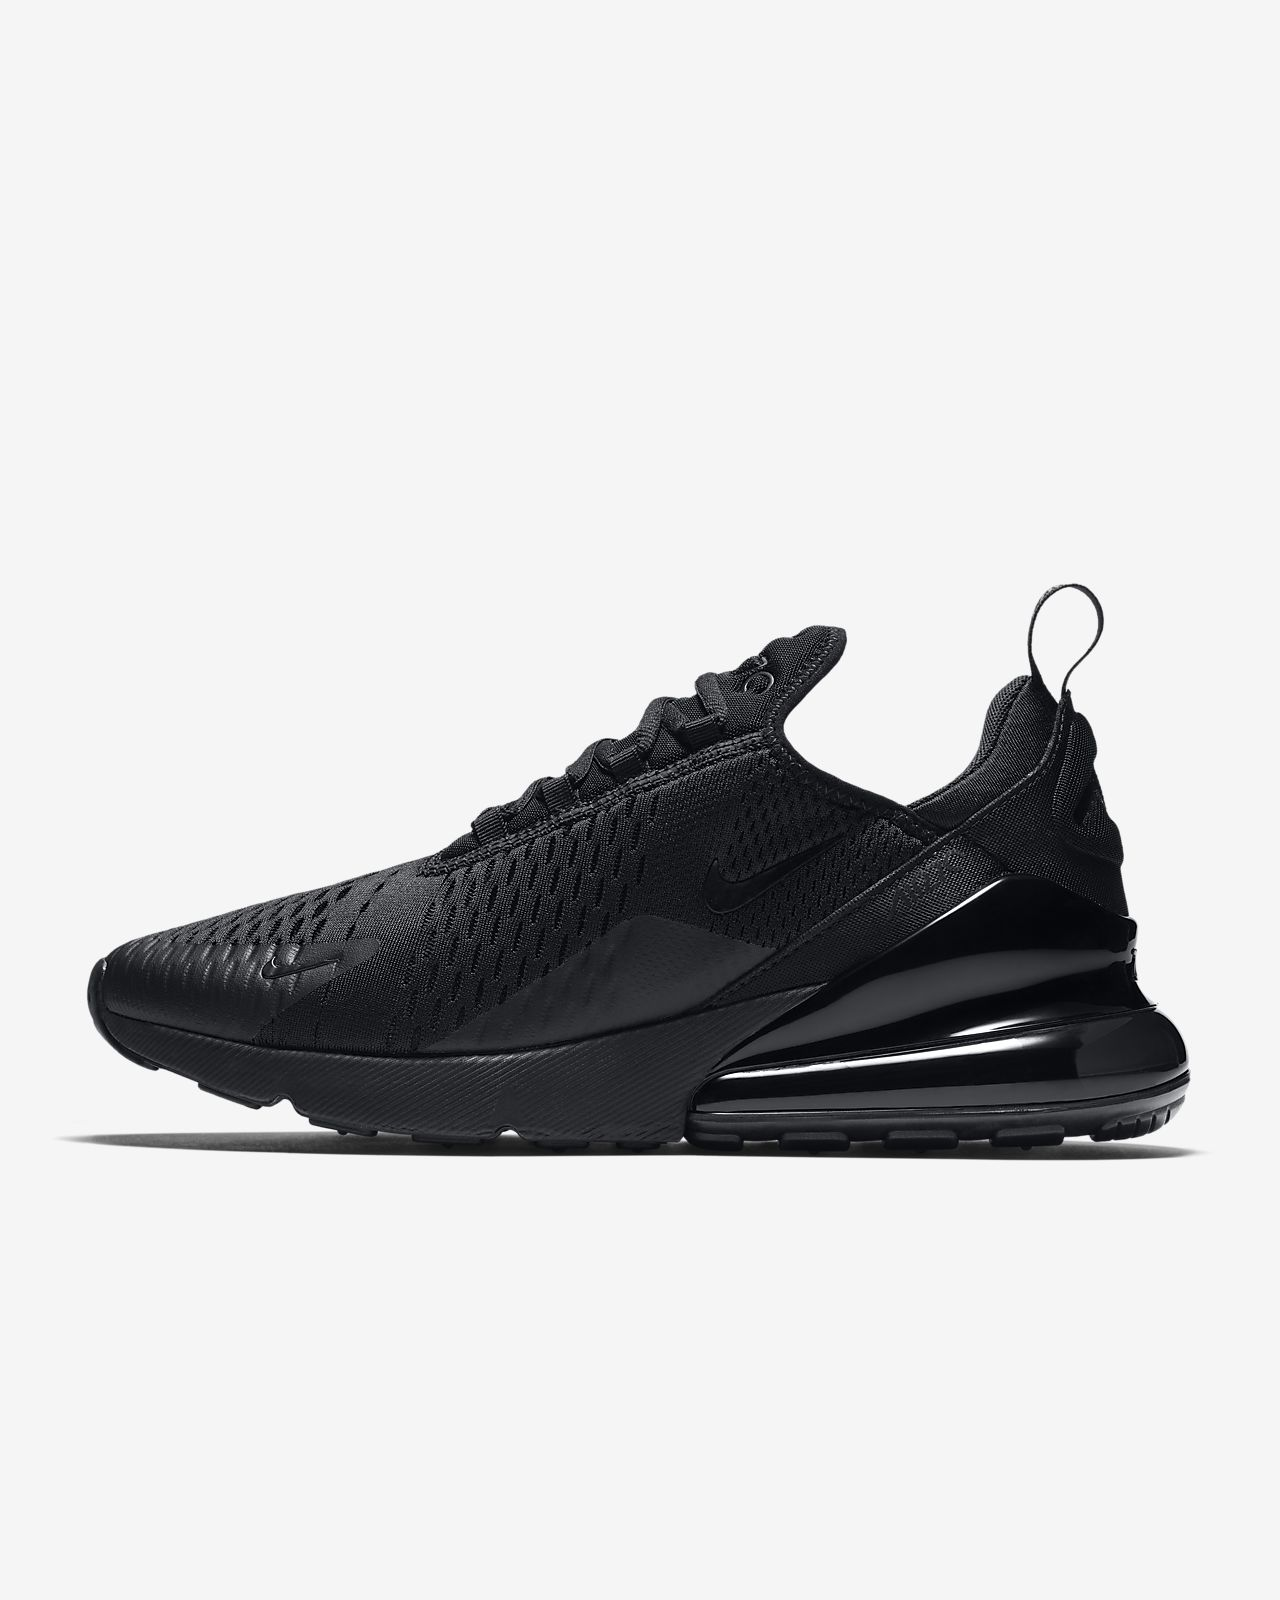 87e1392c82d3 Nike Air Max 270 Men s Shoe. Nike.com AU